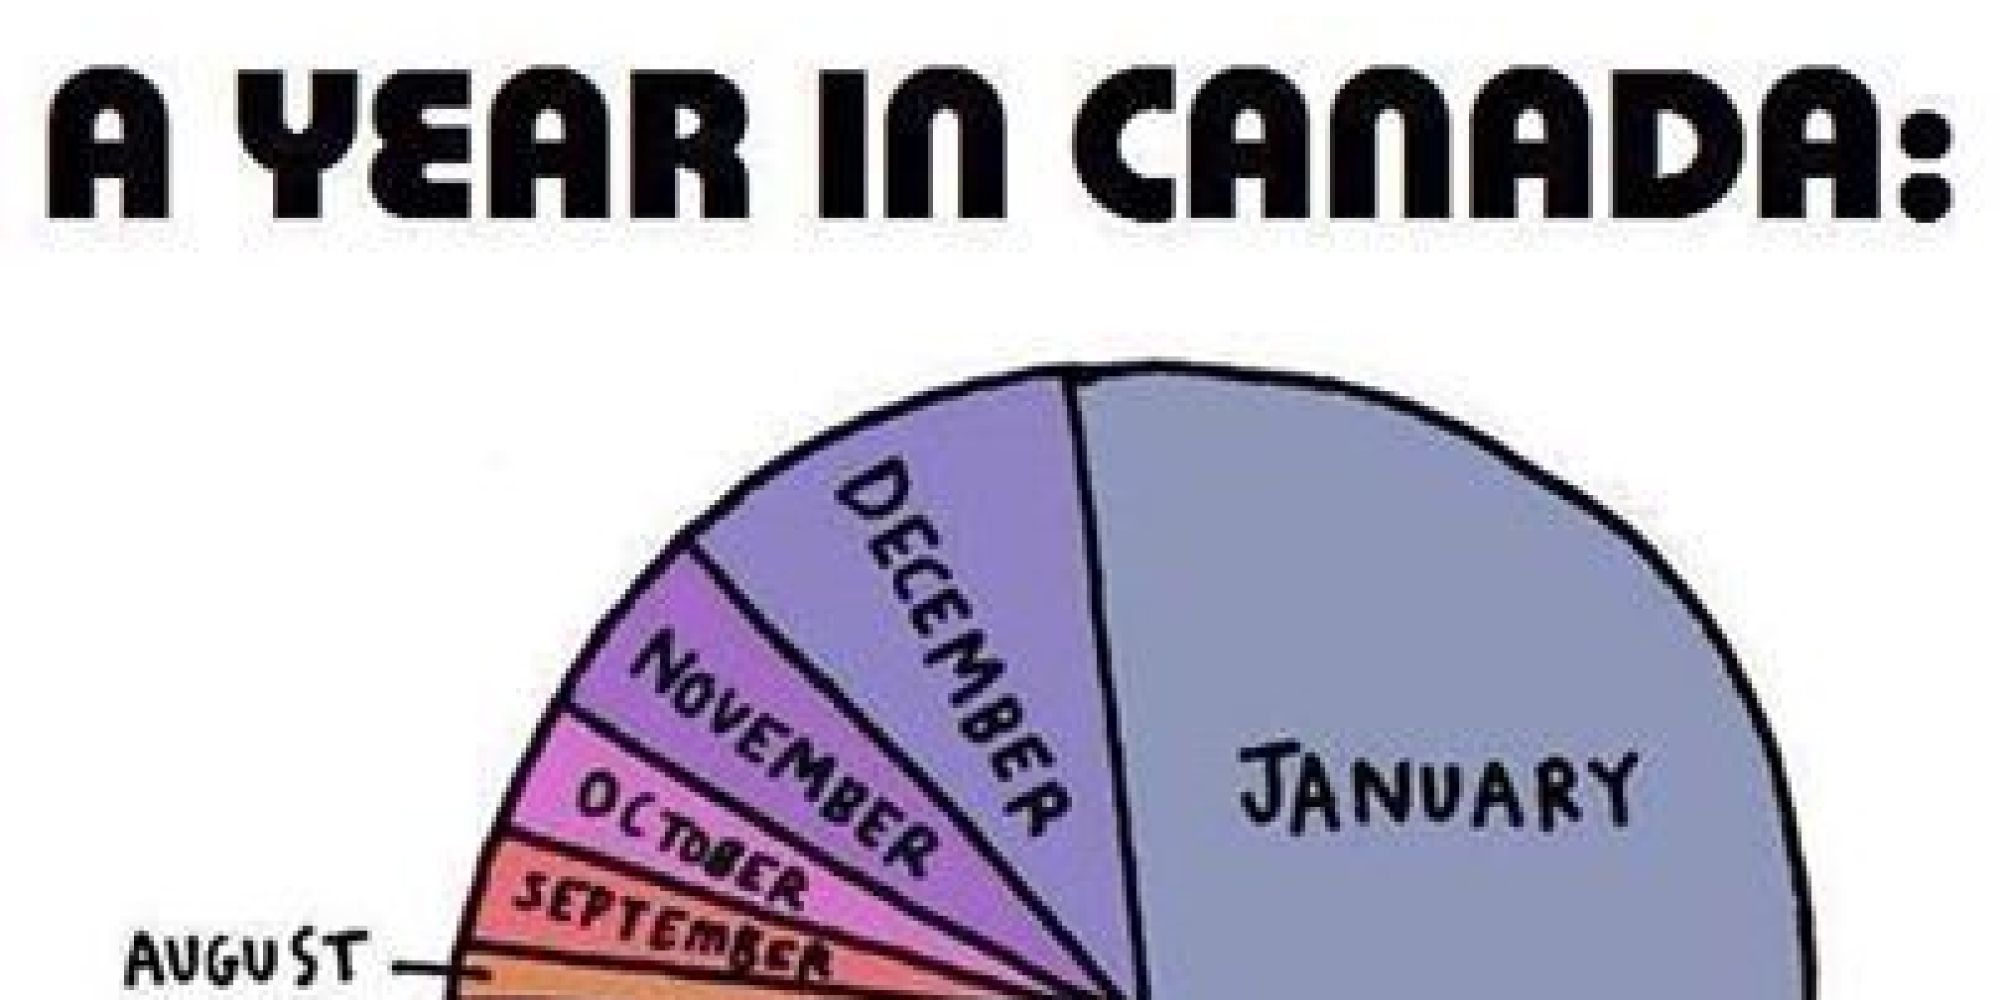 This pie chart is pretty accurate calculate percentages at this pie chart is pretty accurate calculate percentages at percentcalculator percentage memes pinterest pie charts and memes nvjuhfo Choice Image